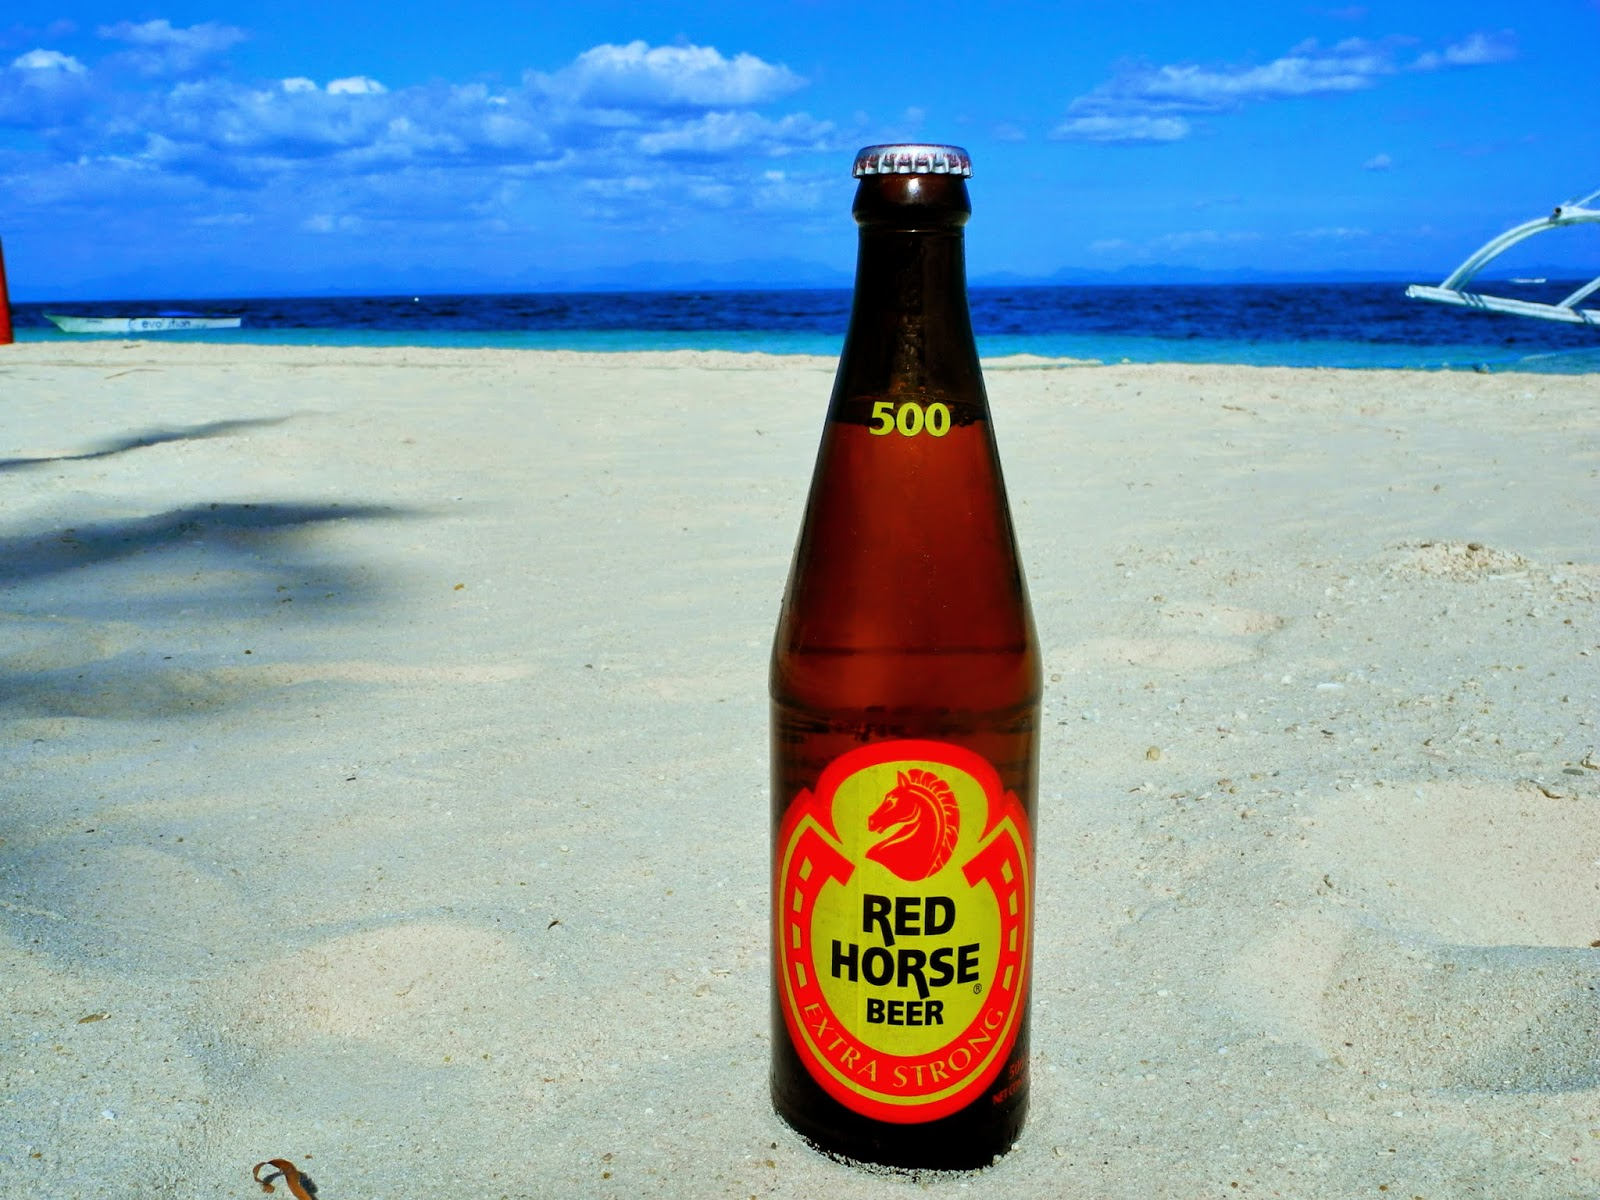 Red horse beer wallpaper - photo#11